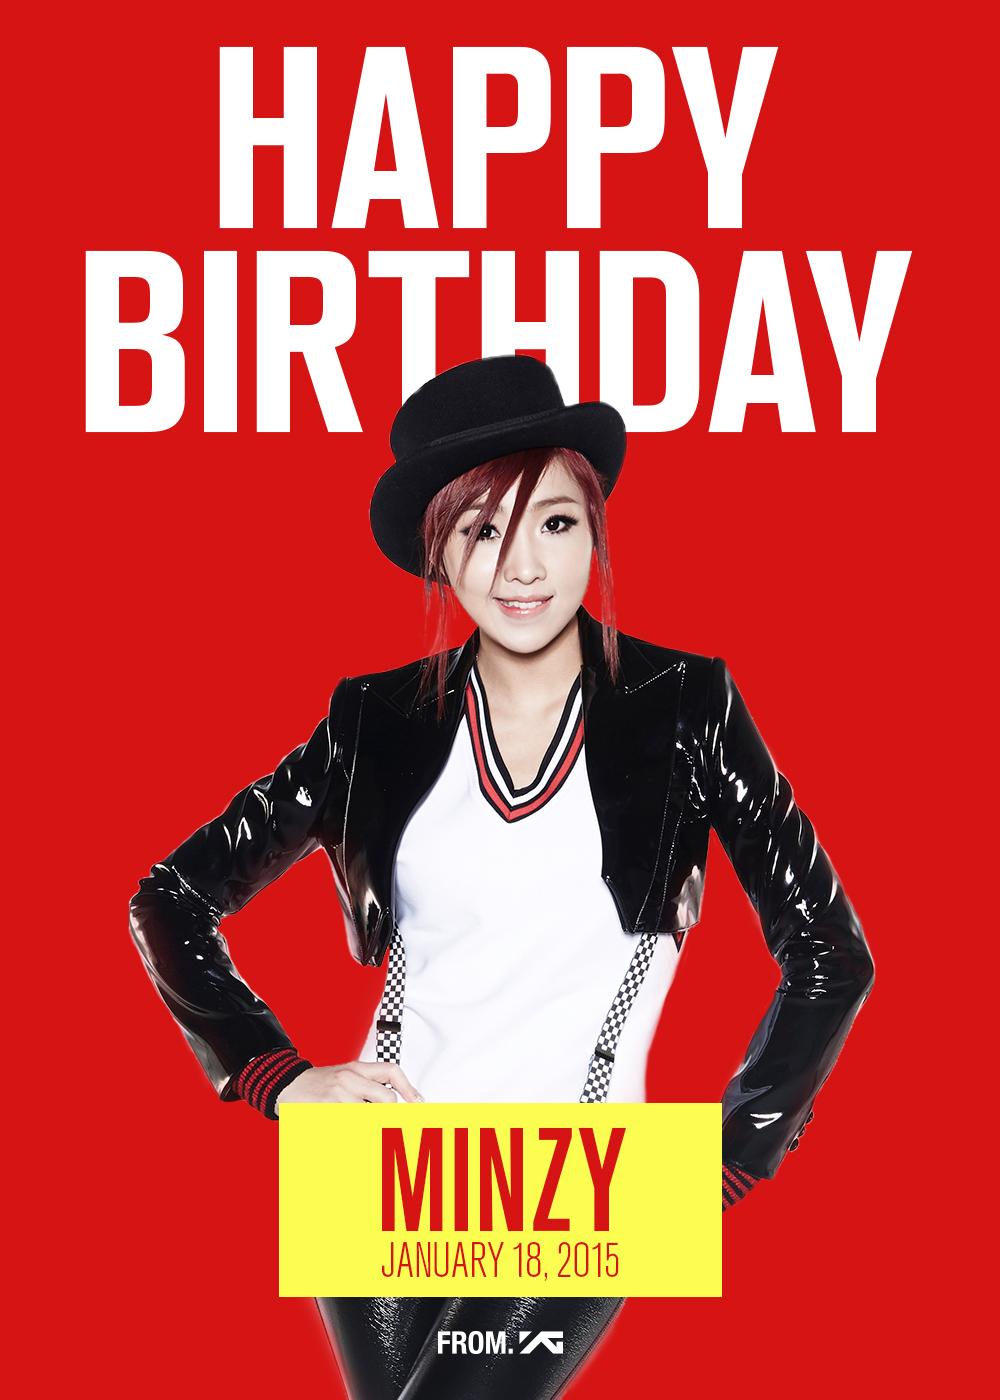 happybirthday22minzy